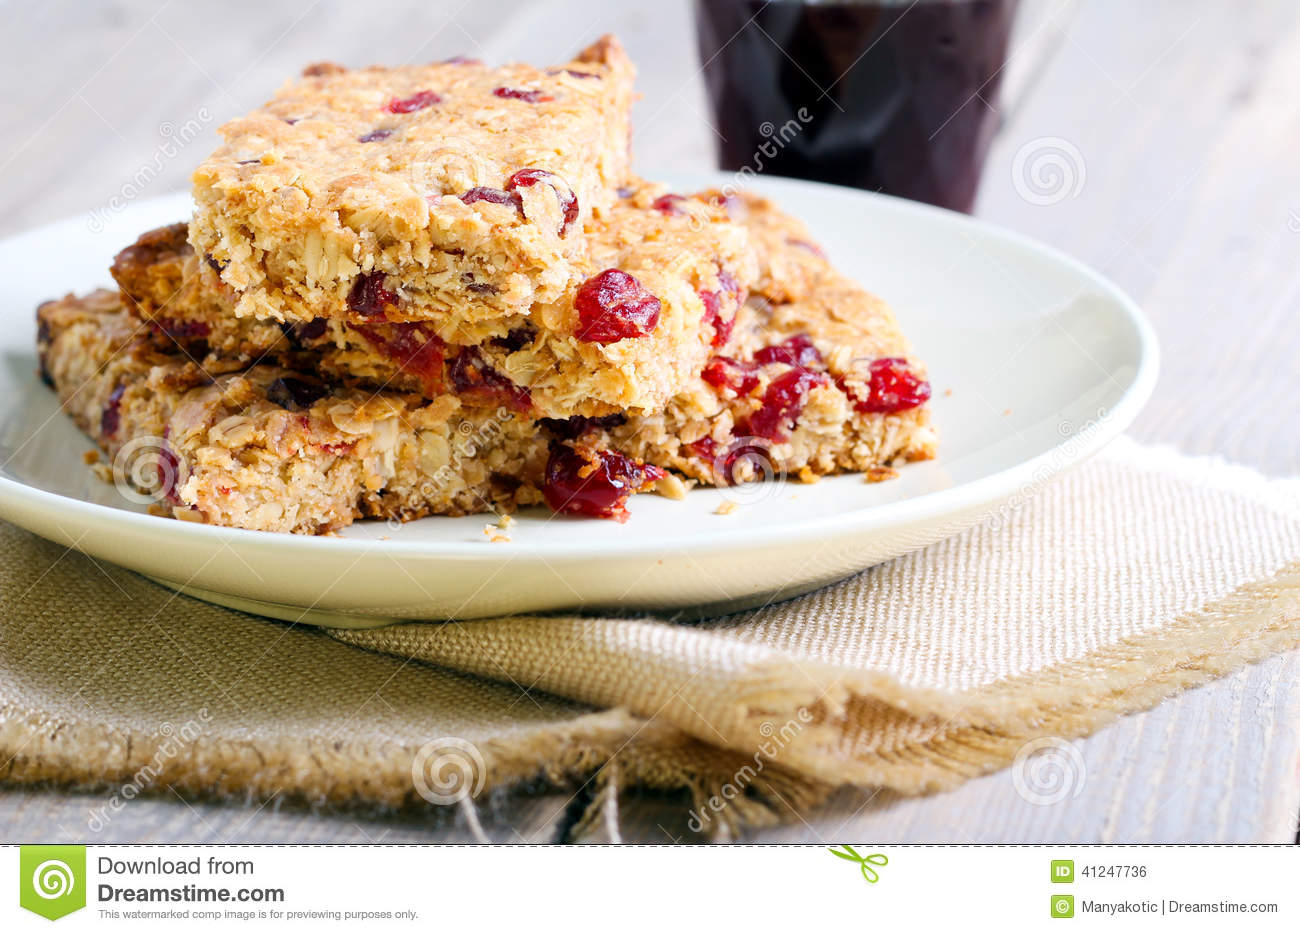 Oat and cranberry bars